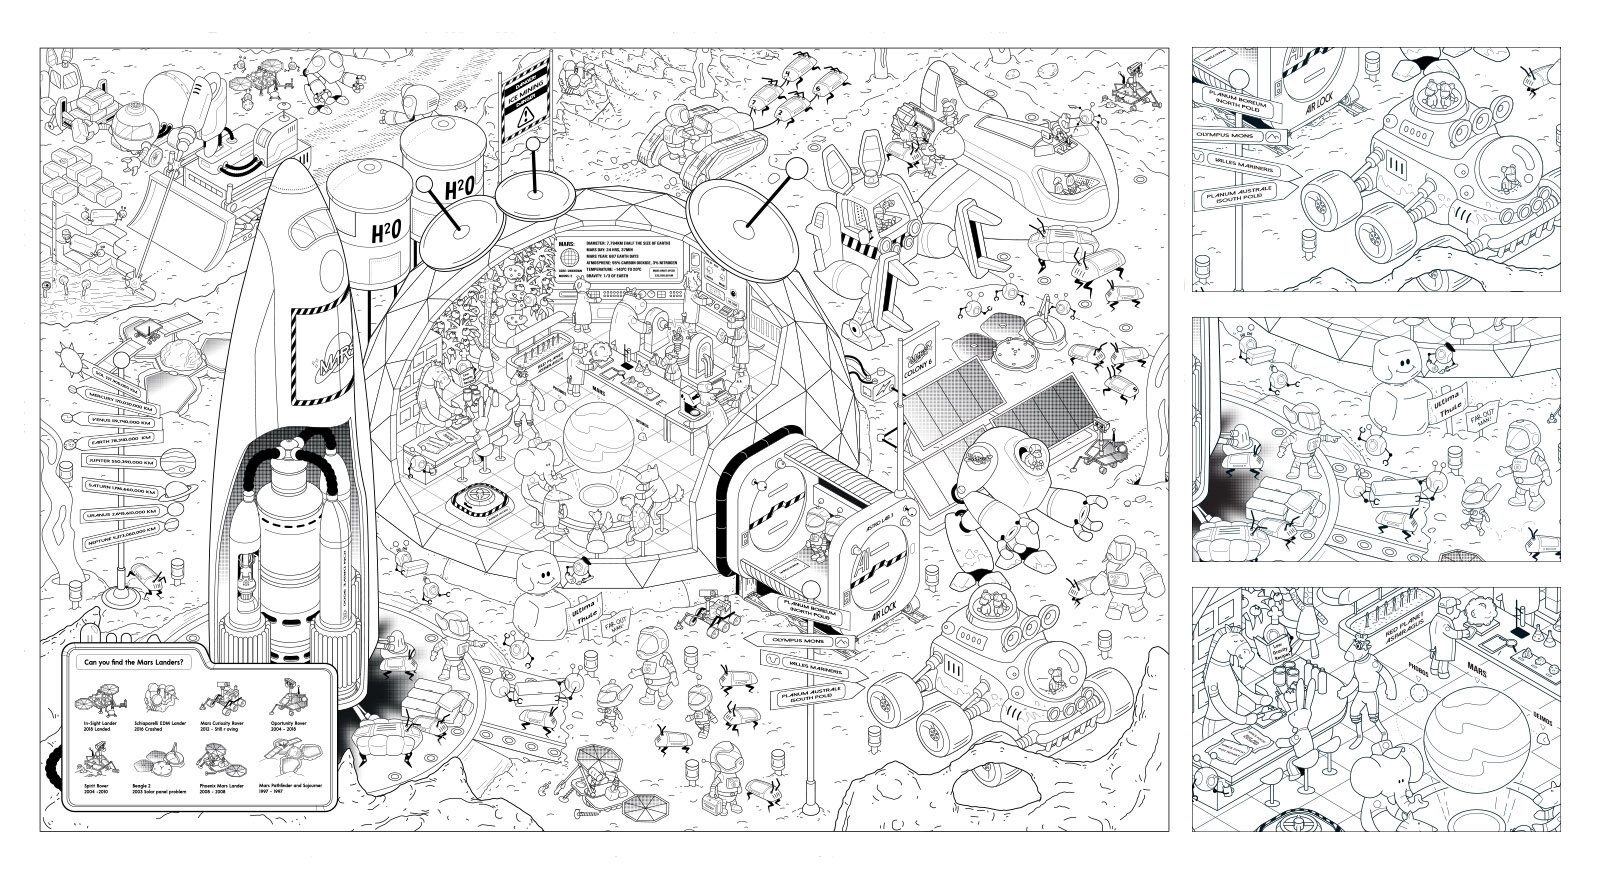 Mars Base Colouring In Poster for Mocolco